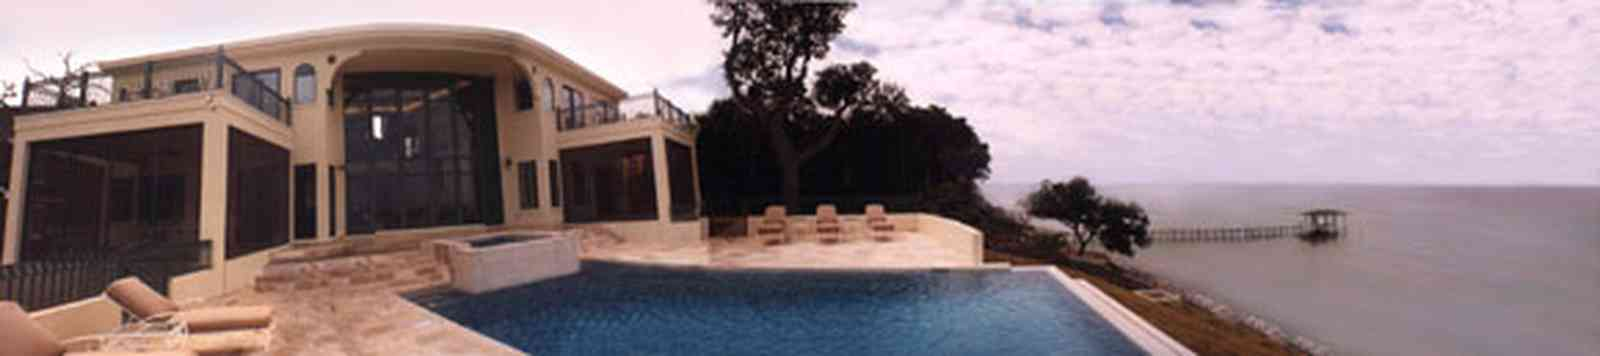 Gulf-Breeze:-Couch-Dreams_pool.jpg:  turret, dormer windows, pyramidal roofgulf coast, gulf of mexico, swimming pool, northern facade, swimming pool, marble decking